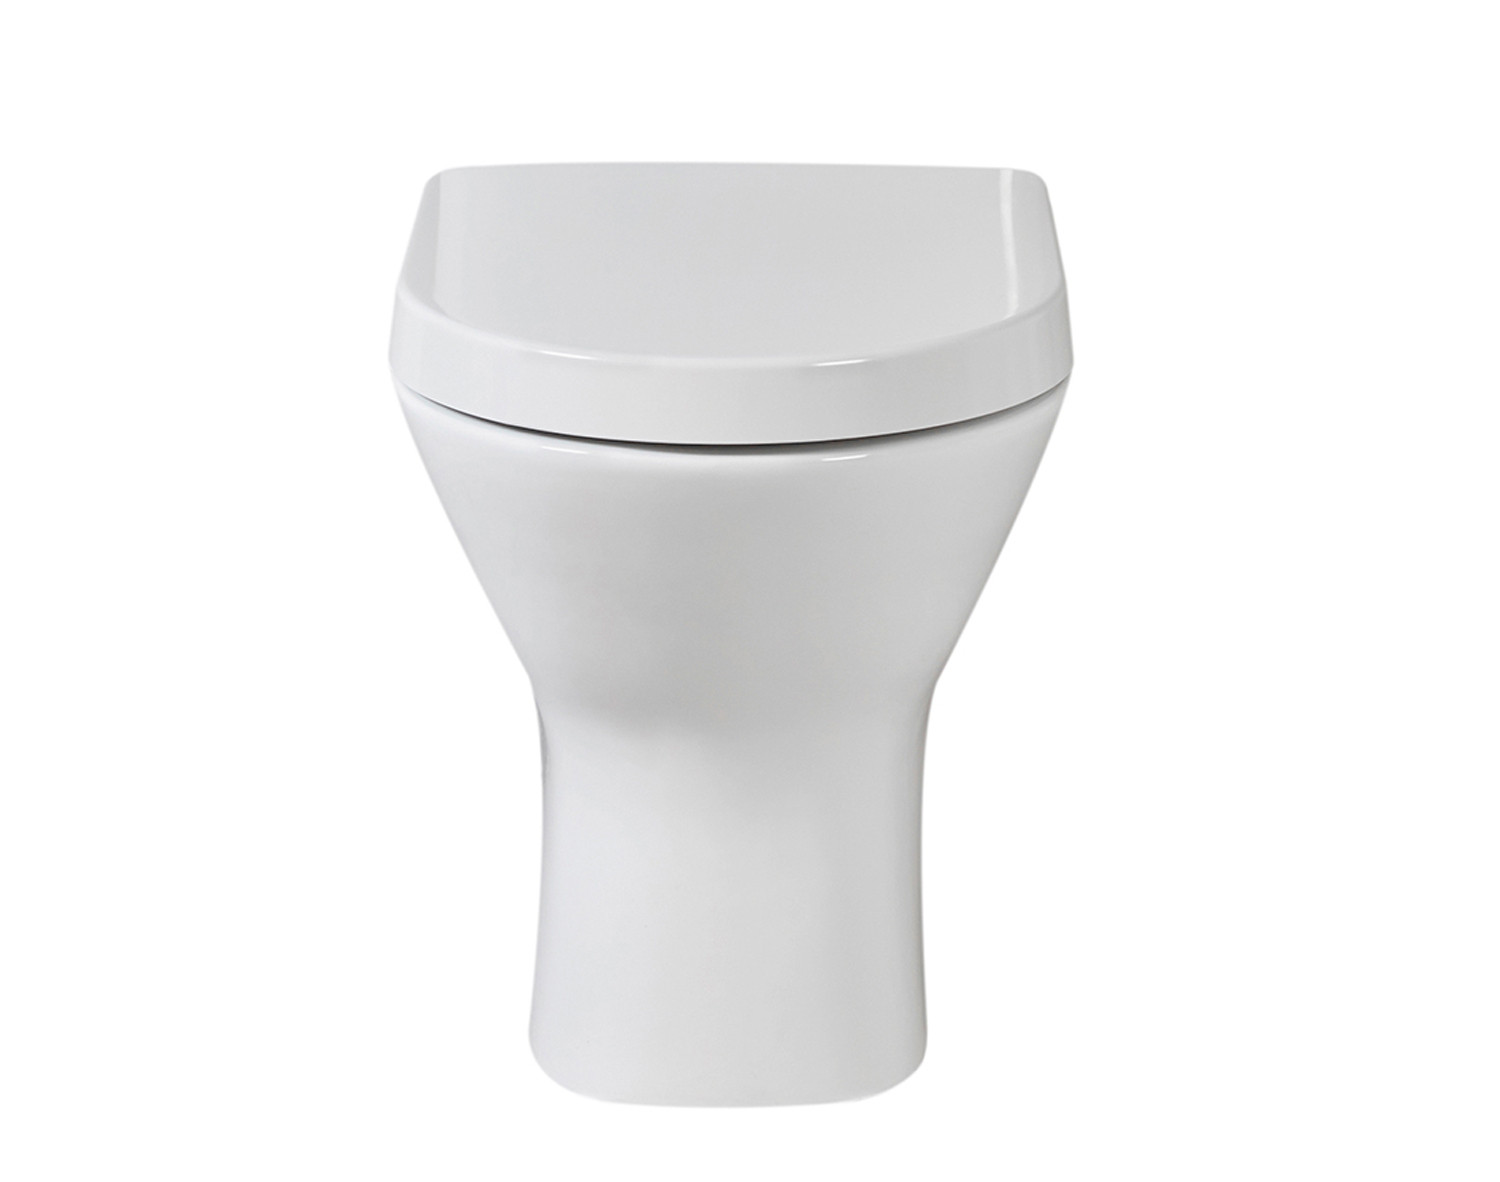 Resort Back-to-Wall Toilet with Soft-Close Seat | FrontlineBathrooms.com